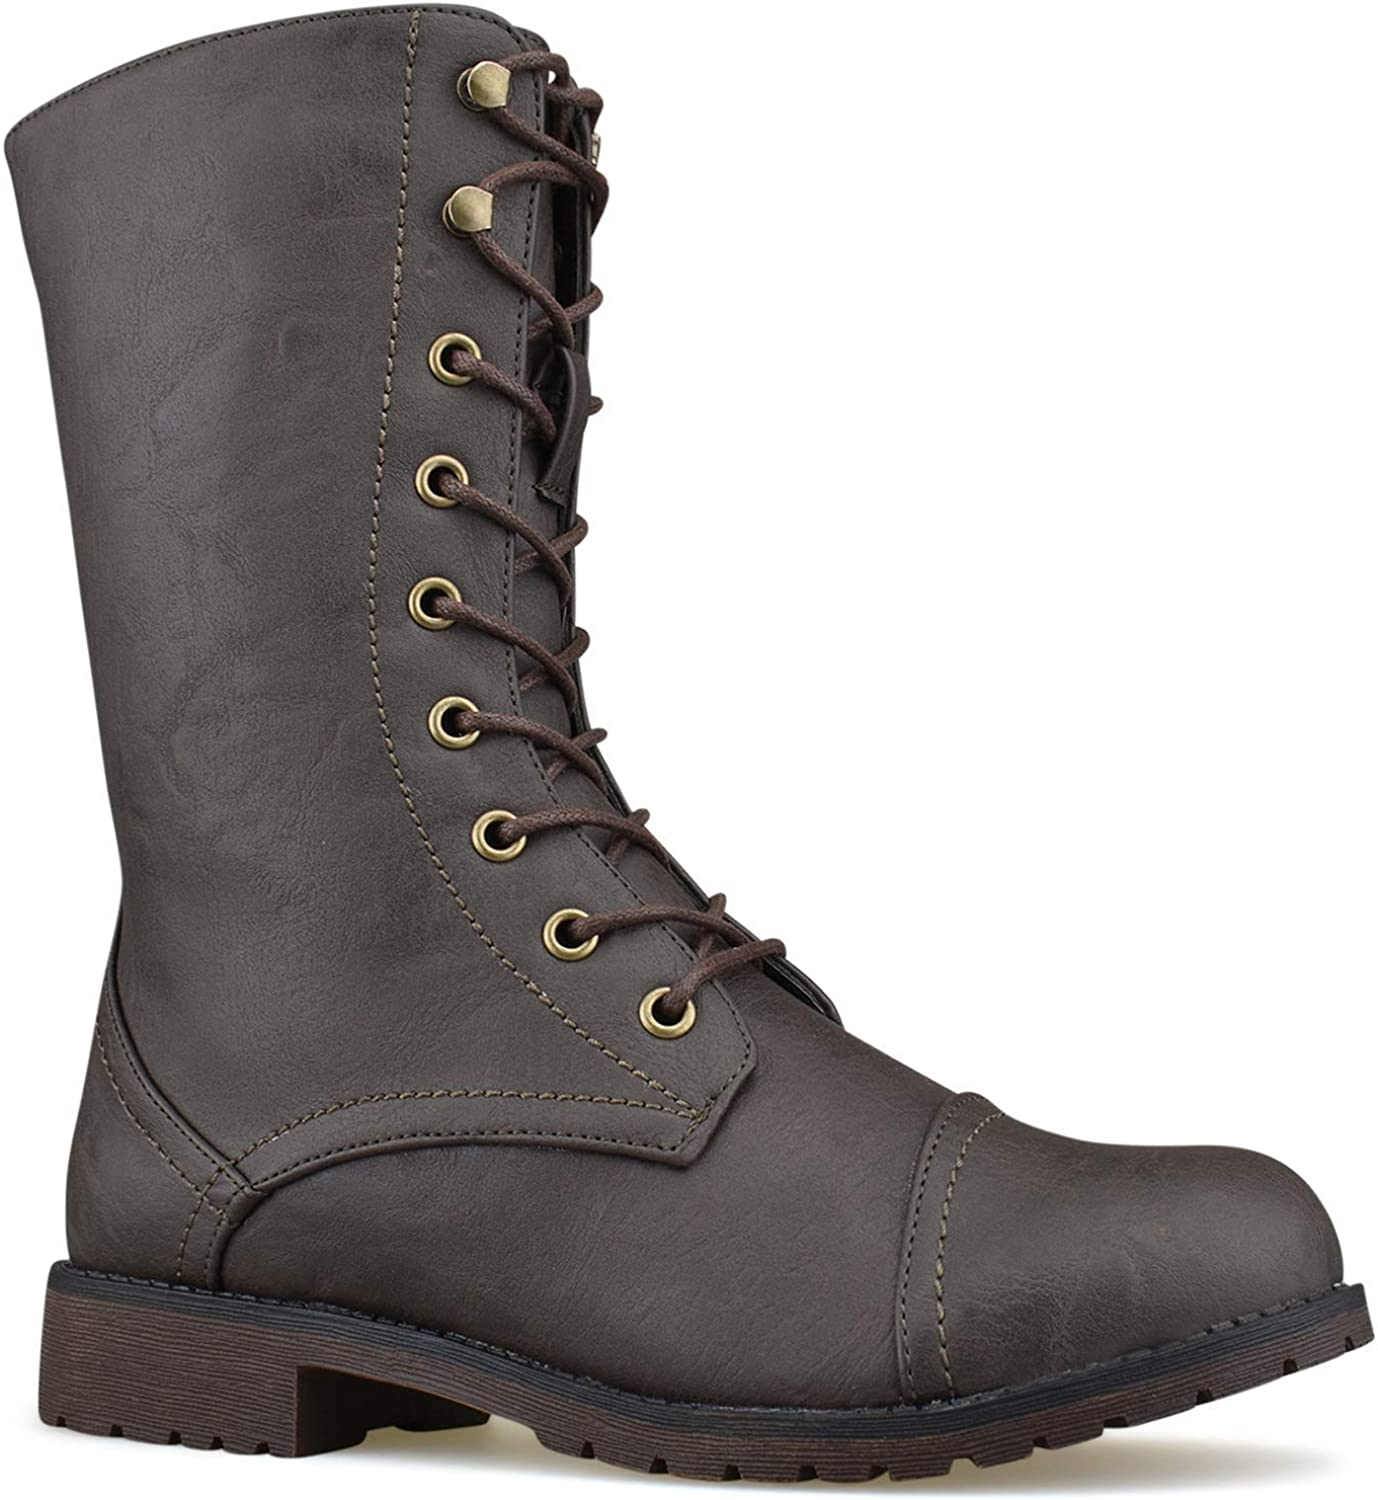 Zgshnfgk Women's Military Ankle Lace up Buckle Combat Boots Mid Knee High Exclusive Booties